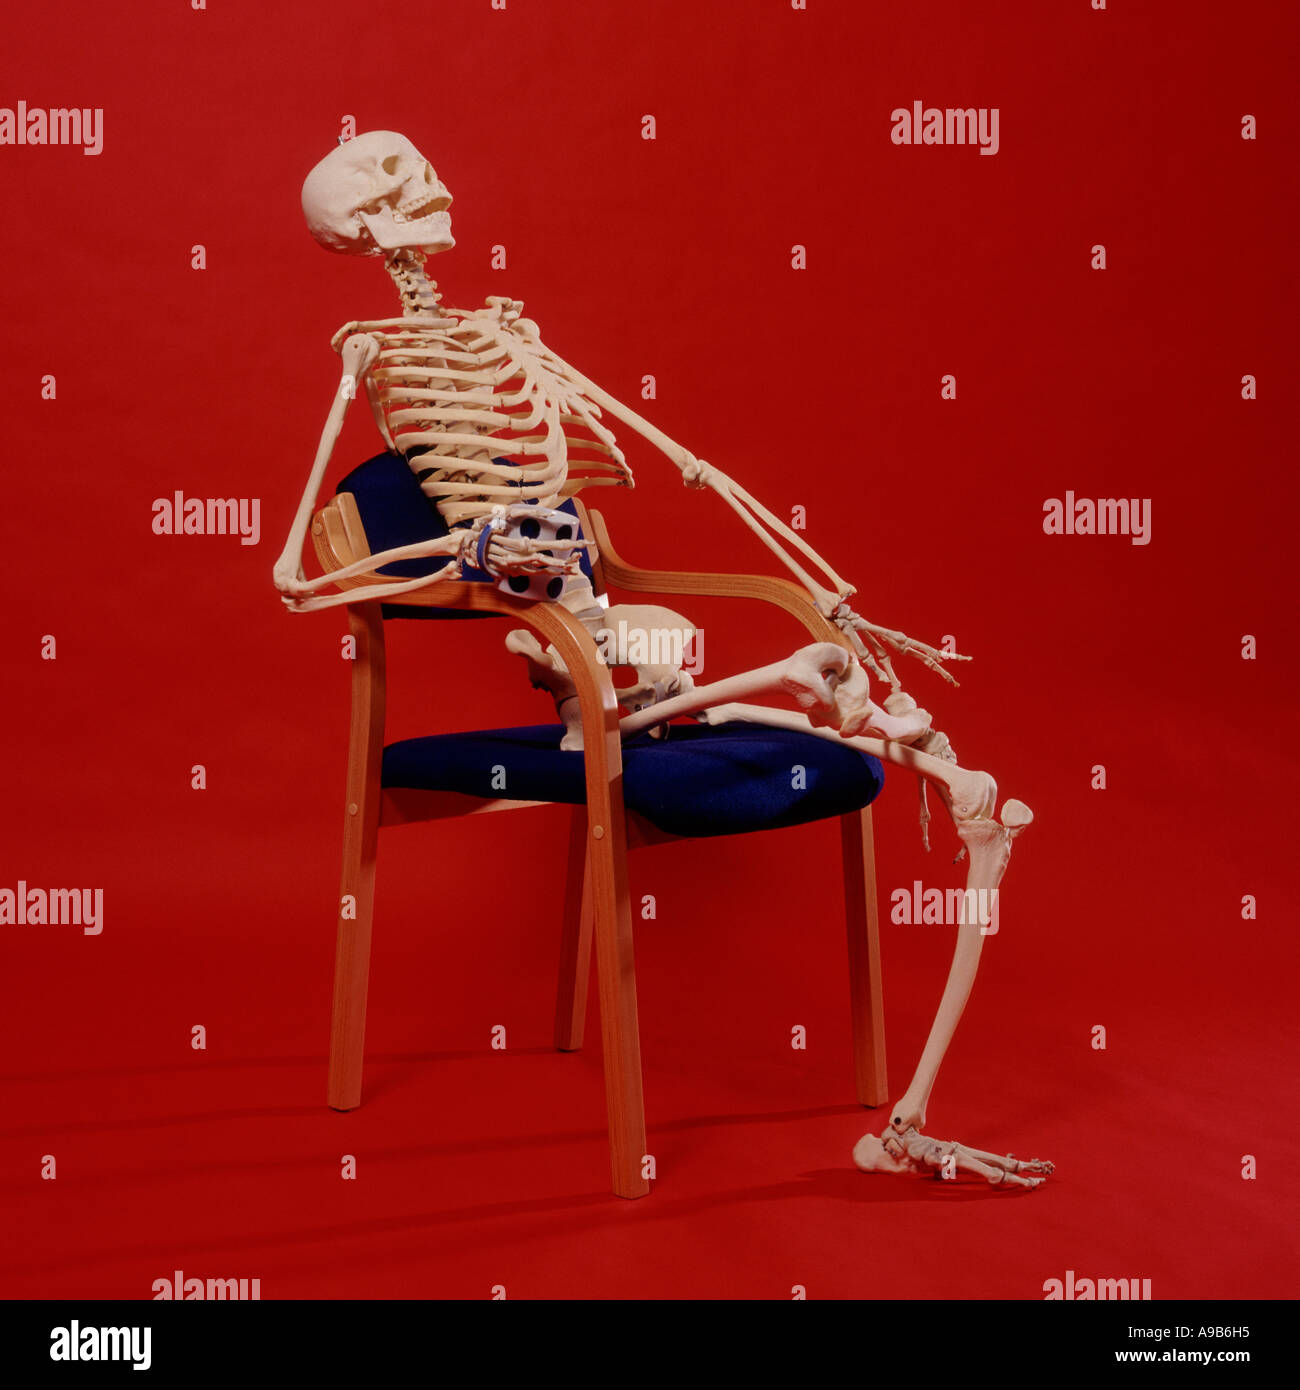 skeleton relaxing in a chair with a mug of tea or coffee in hand